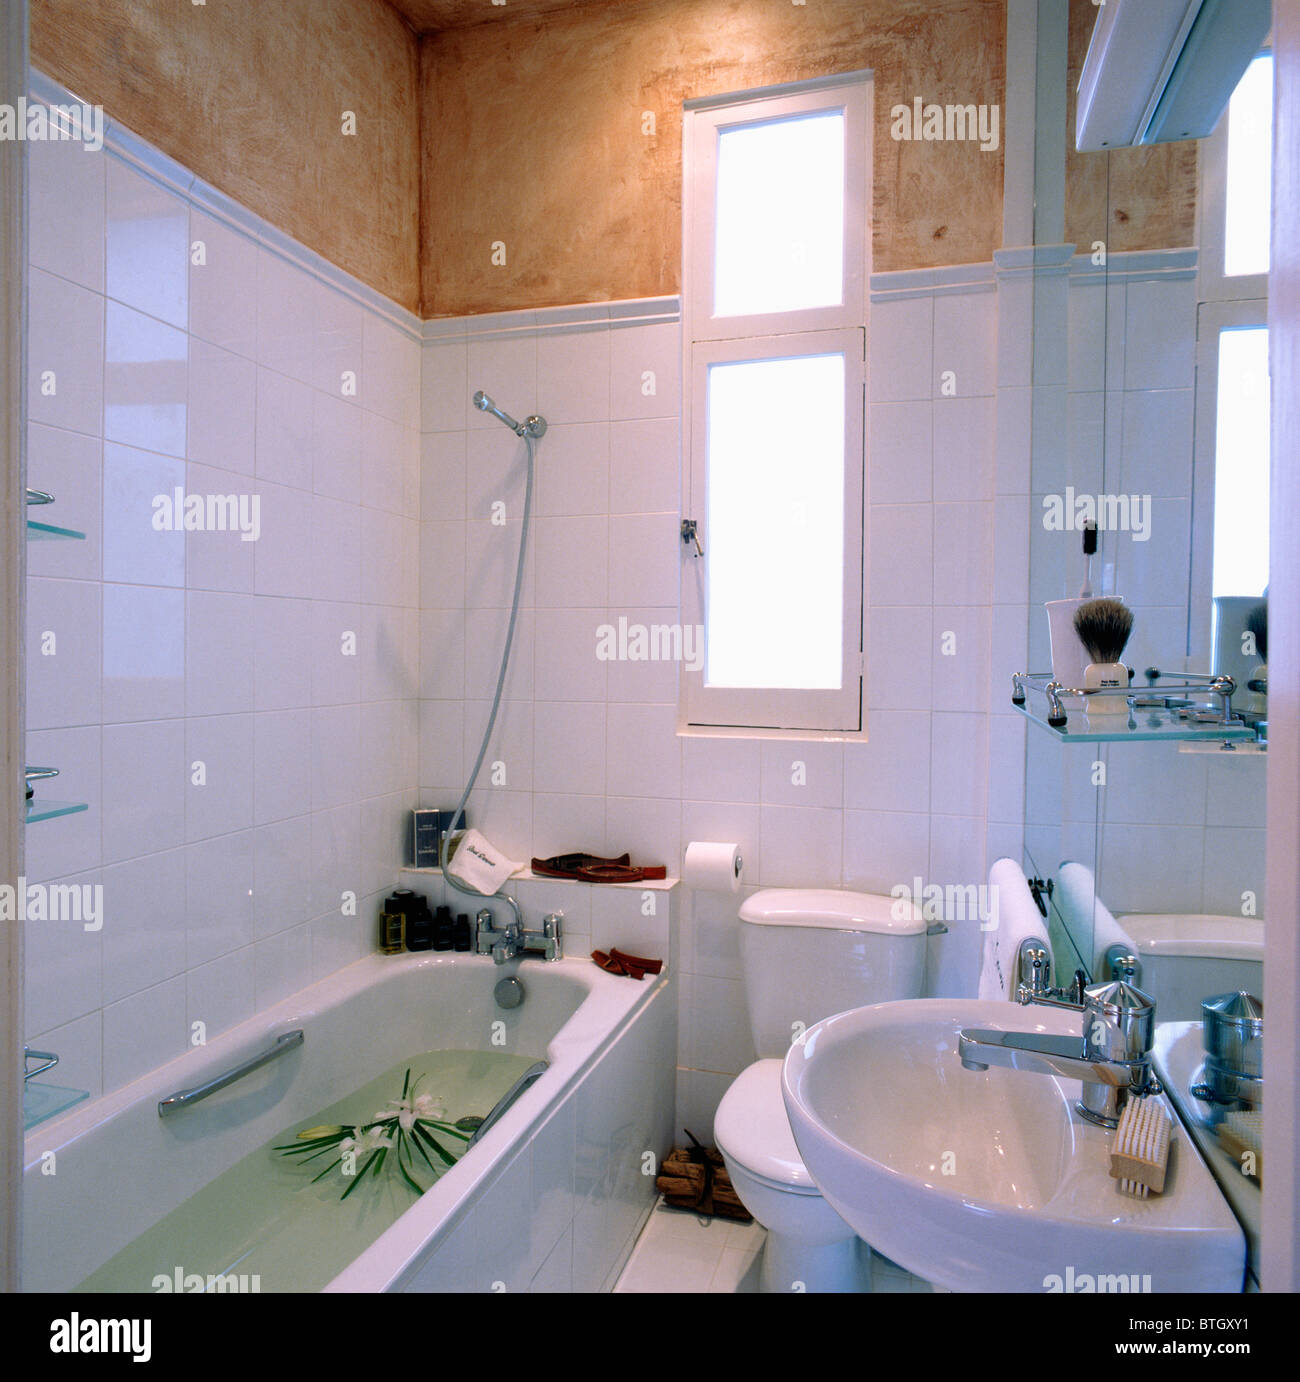 White tiled walls in modern economy-style bathroom with water in ...